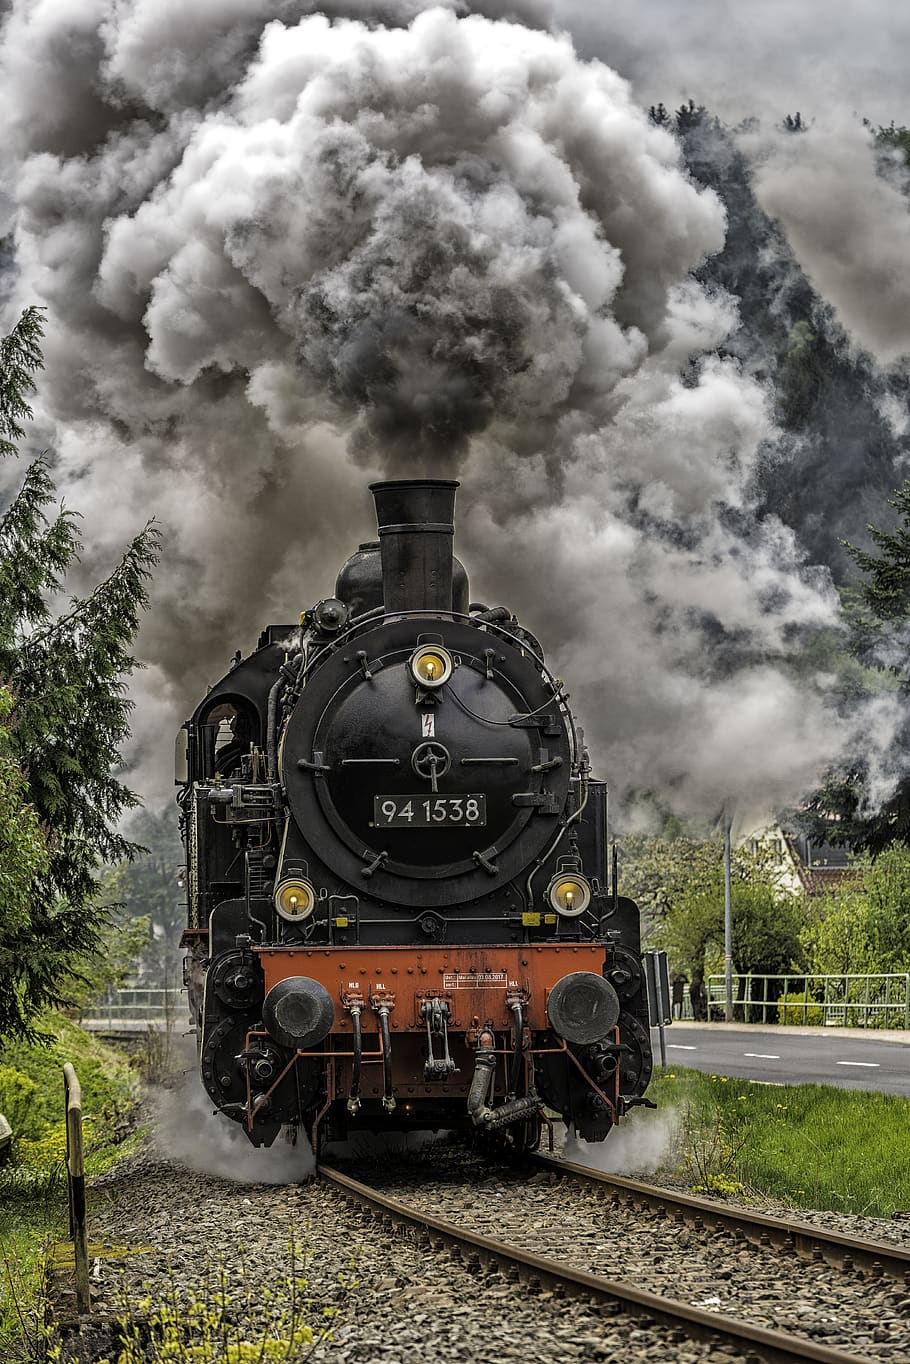 A picture of a steam locomotive train